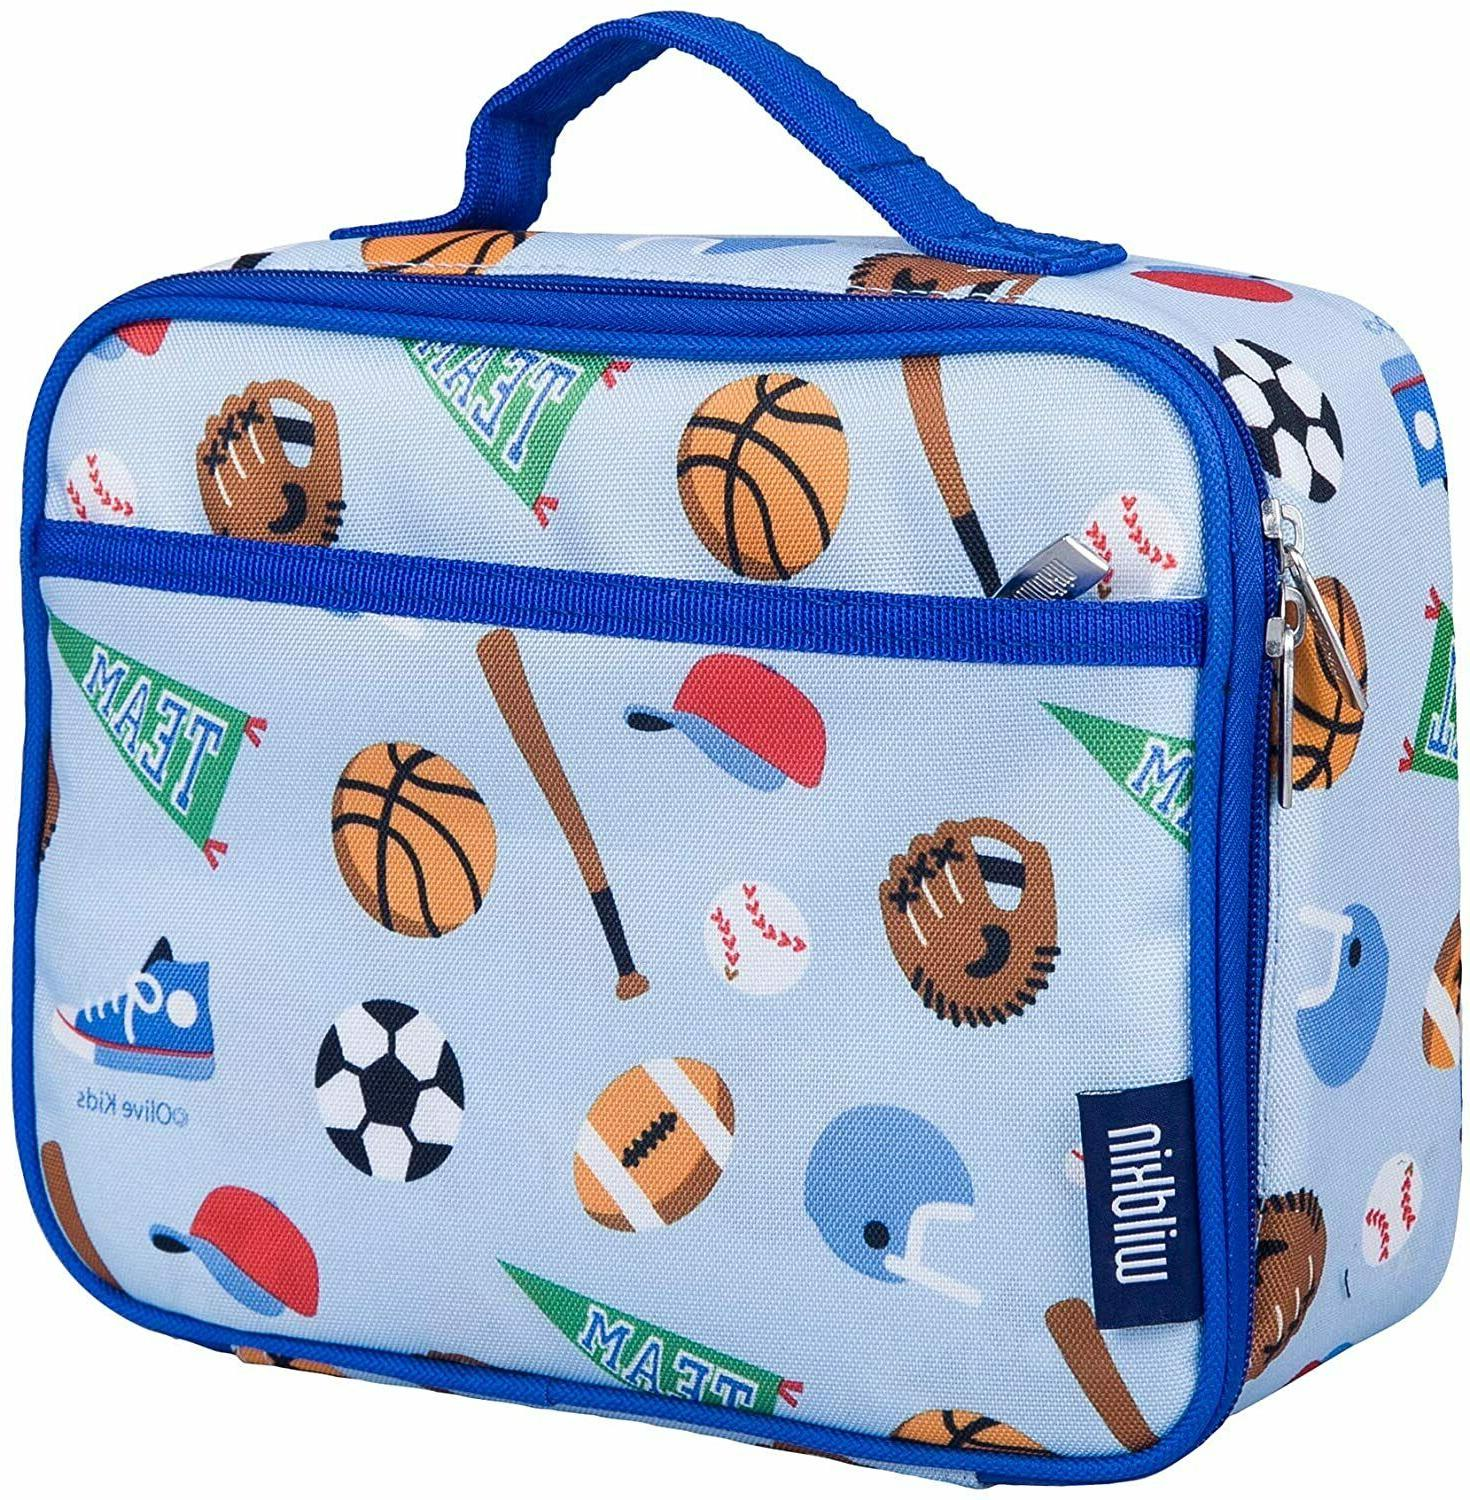 kids insulated lunch box for boys